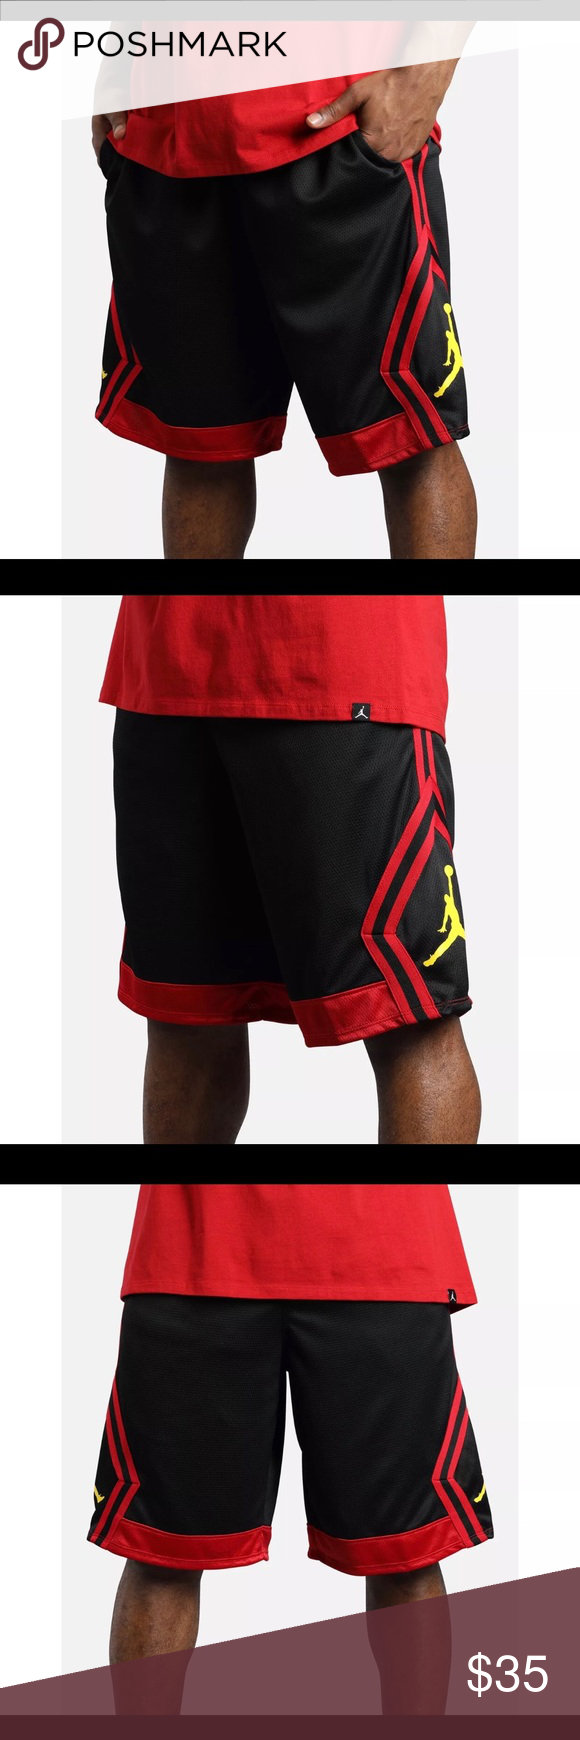 38475229a07 Air Jordan Rise Diamond Last Shot Basketball Short 100% Authentic! Brand  New with Tags! Nike Air Jordan Rise Diamond Last Shot Basketball Shorts! Men  Size ...